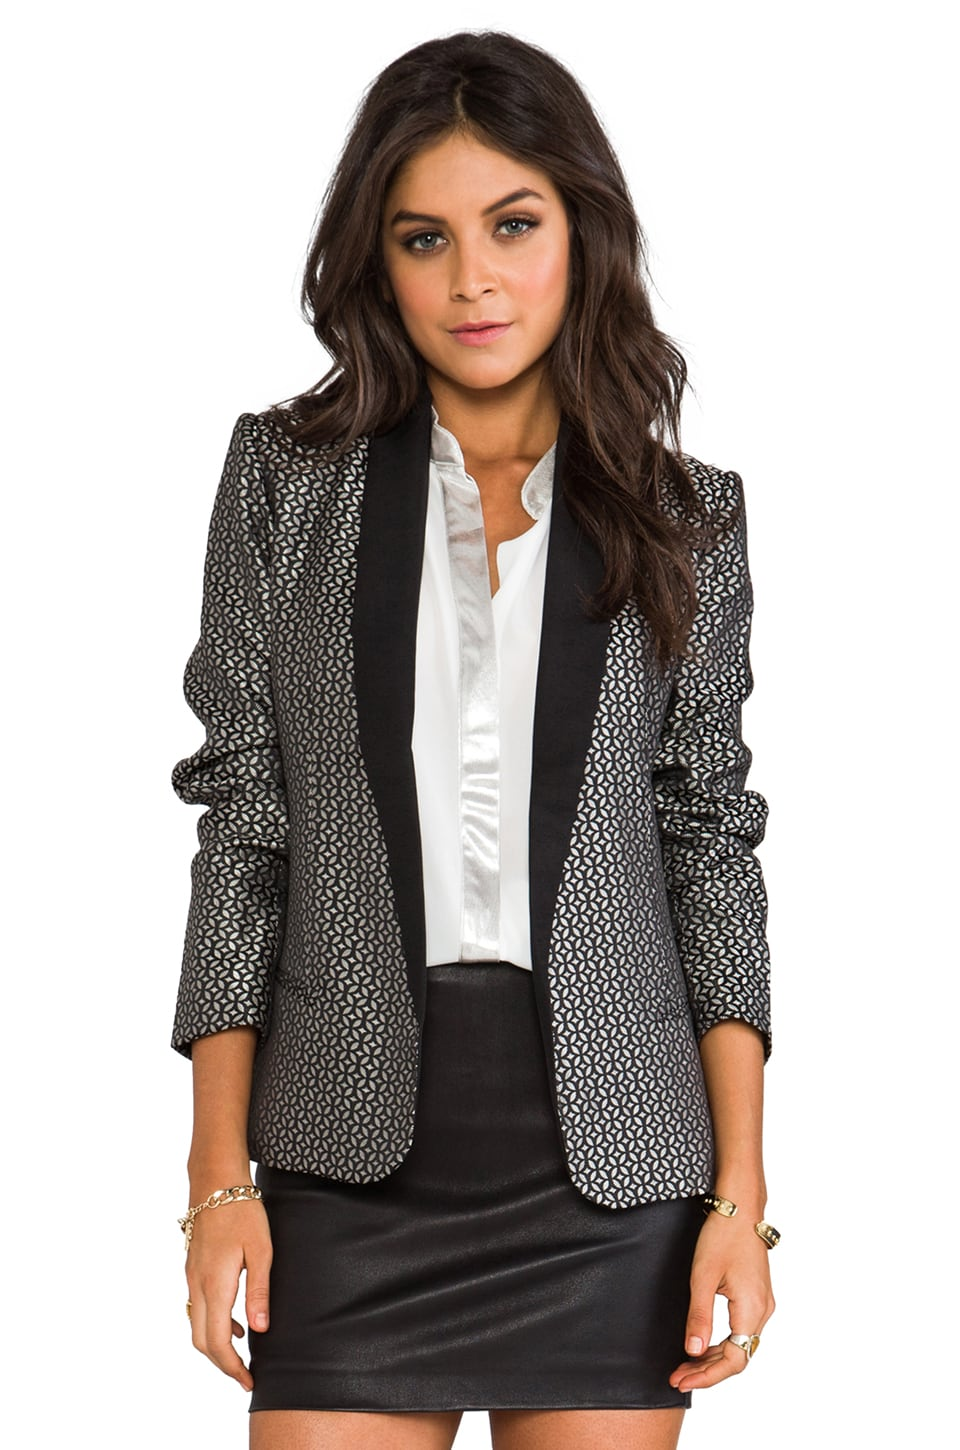 BB Dakota Harriet Jacquard Lapel Blazer in Black